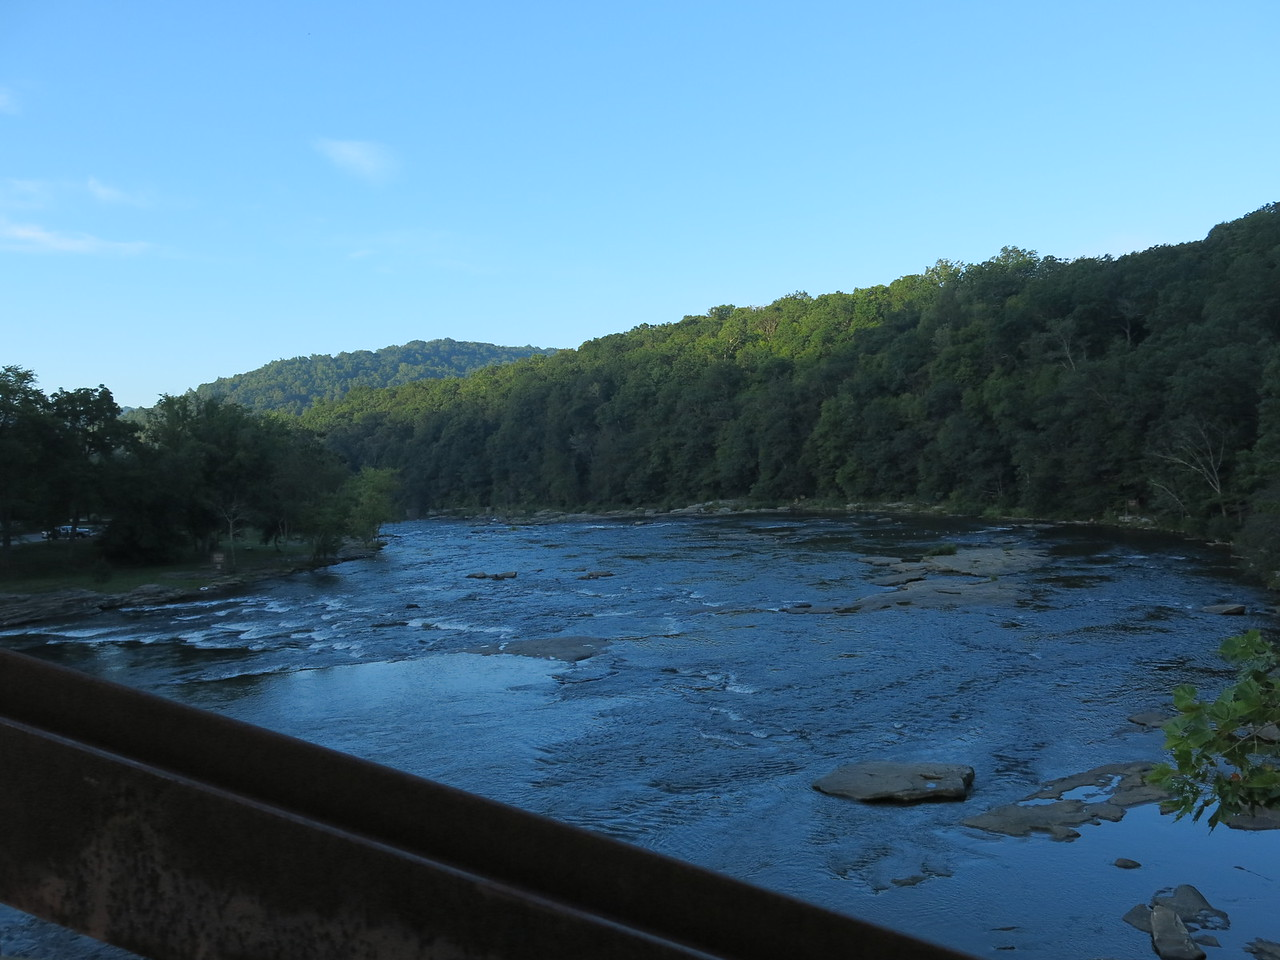 Downstream view from Low Bridge